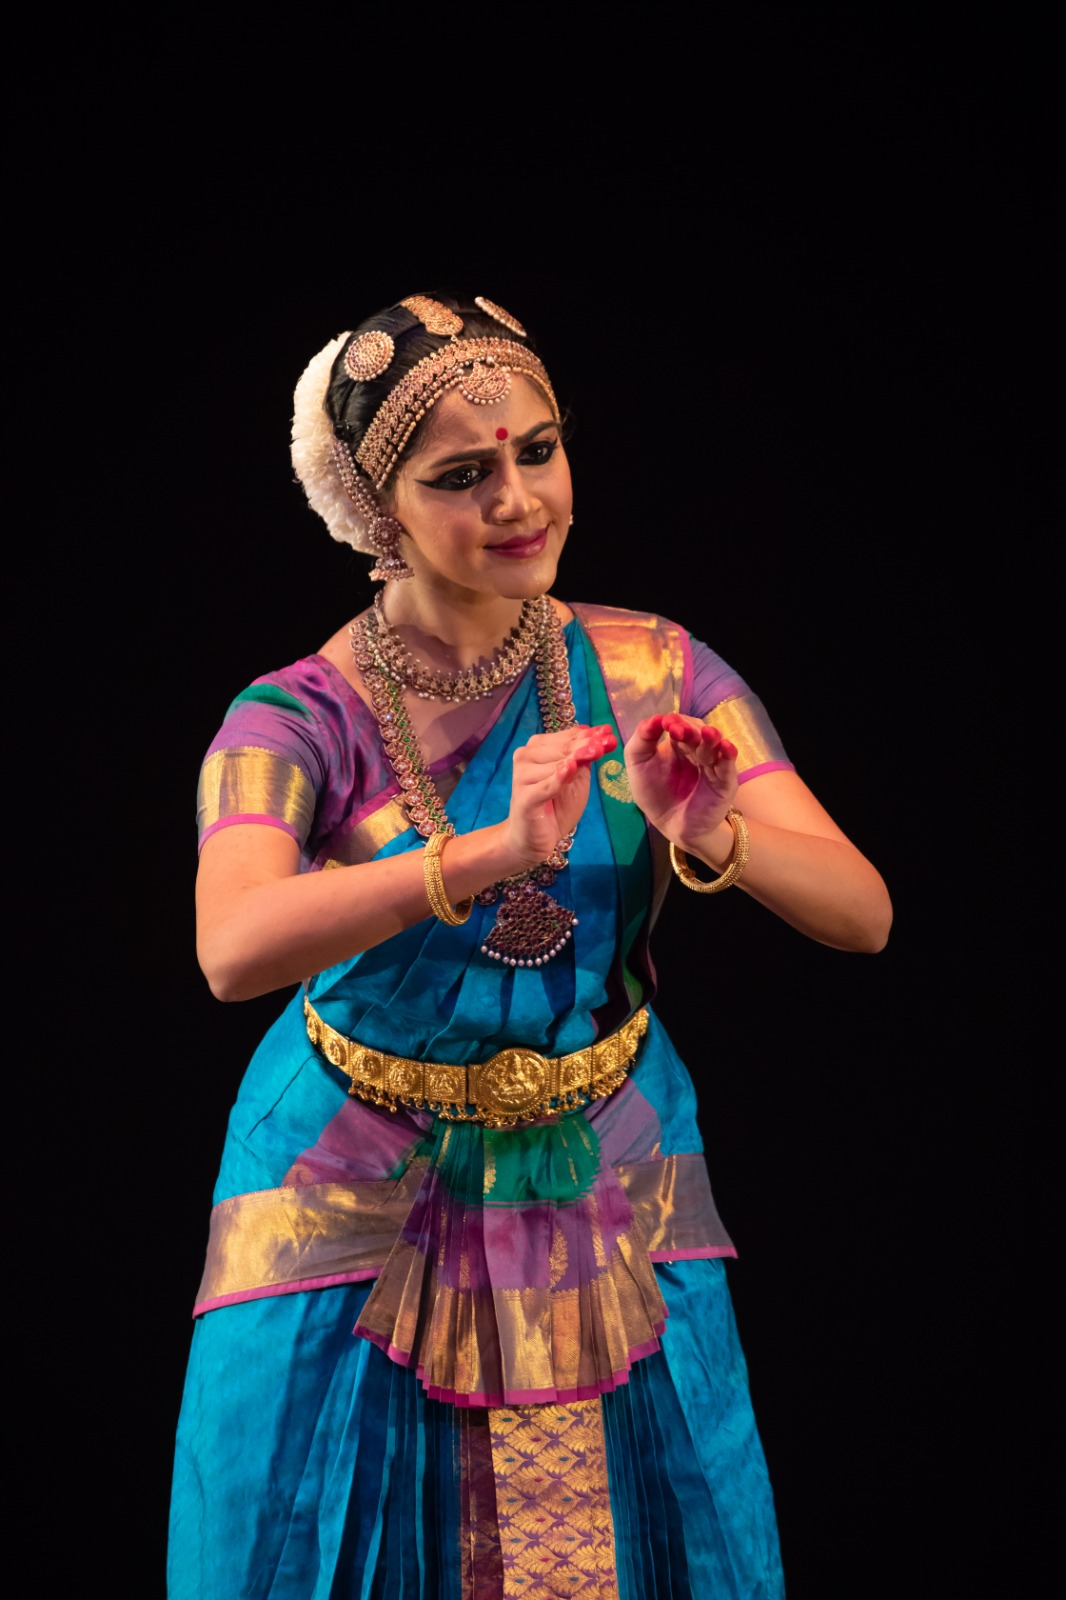 Kshirja Govind was awarded the Best Student and Natyavisharad on completion of her Dance Diploma at SIFAS. Photo courtesy: Esplanade